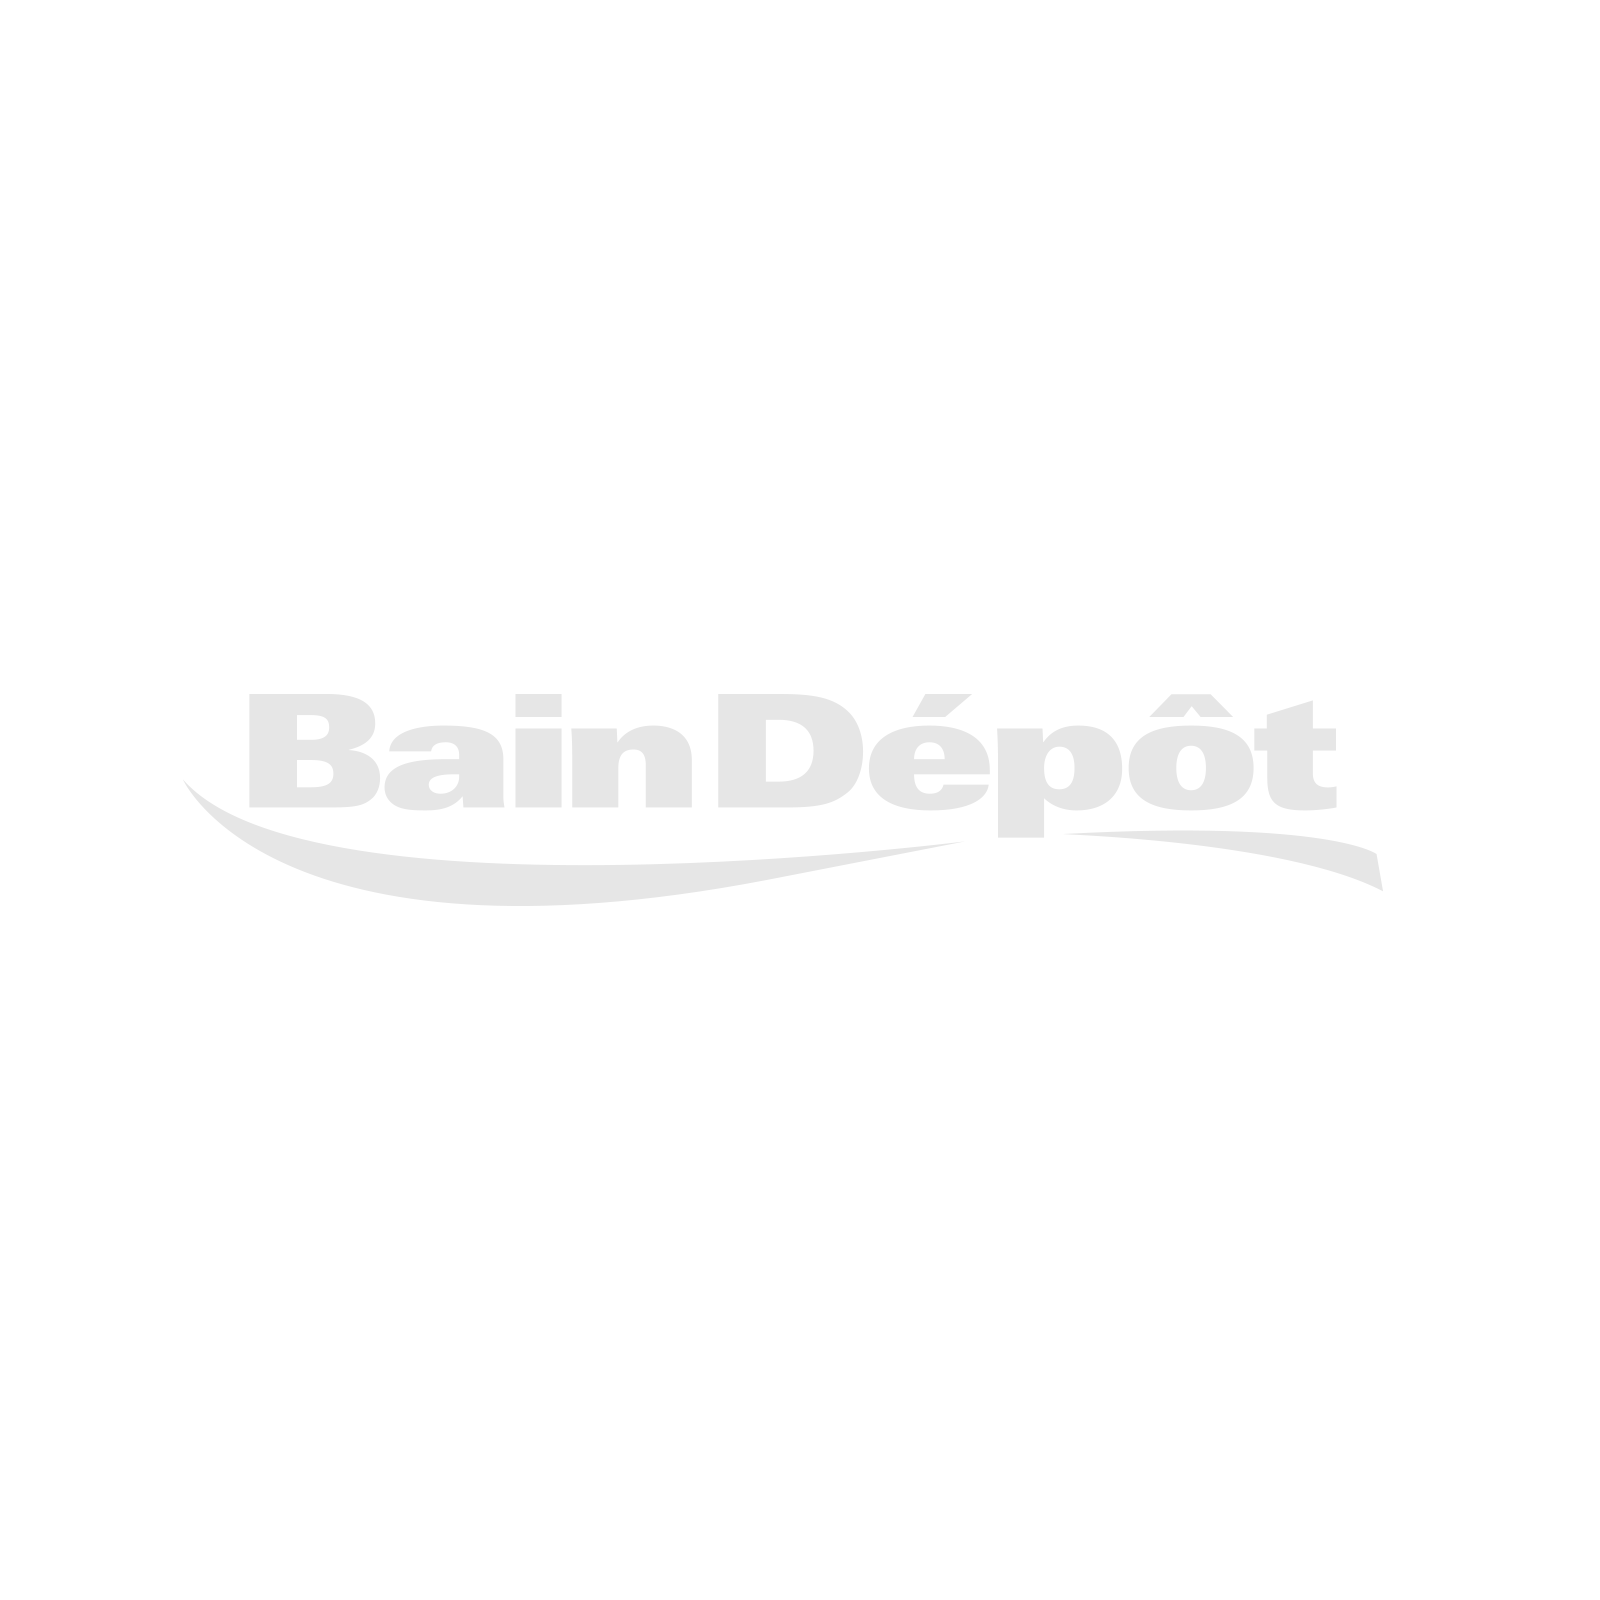 "36"" x 36"" Round shower door"